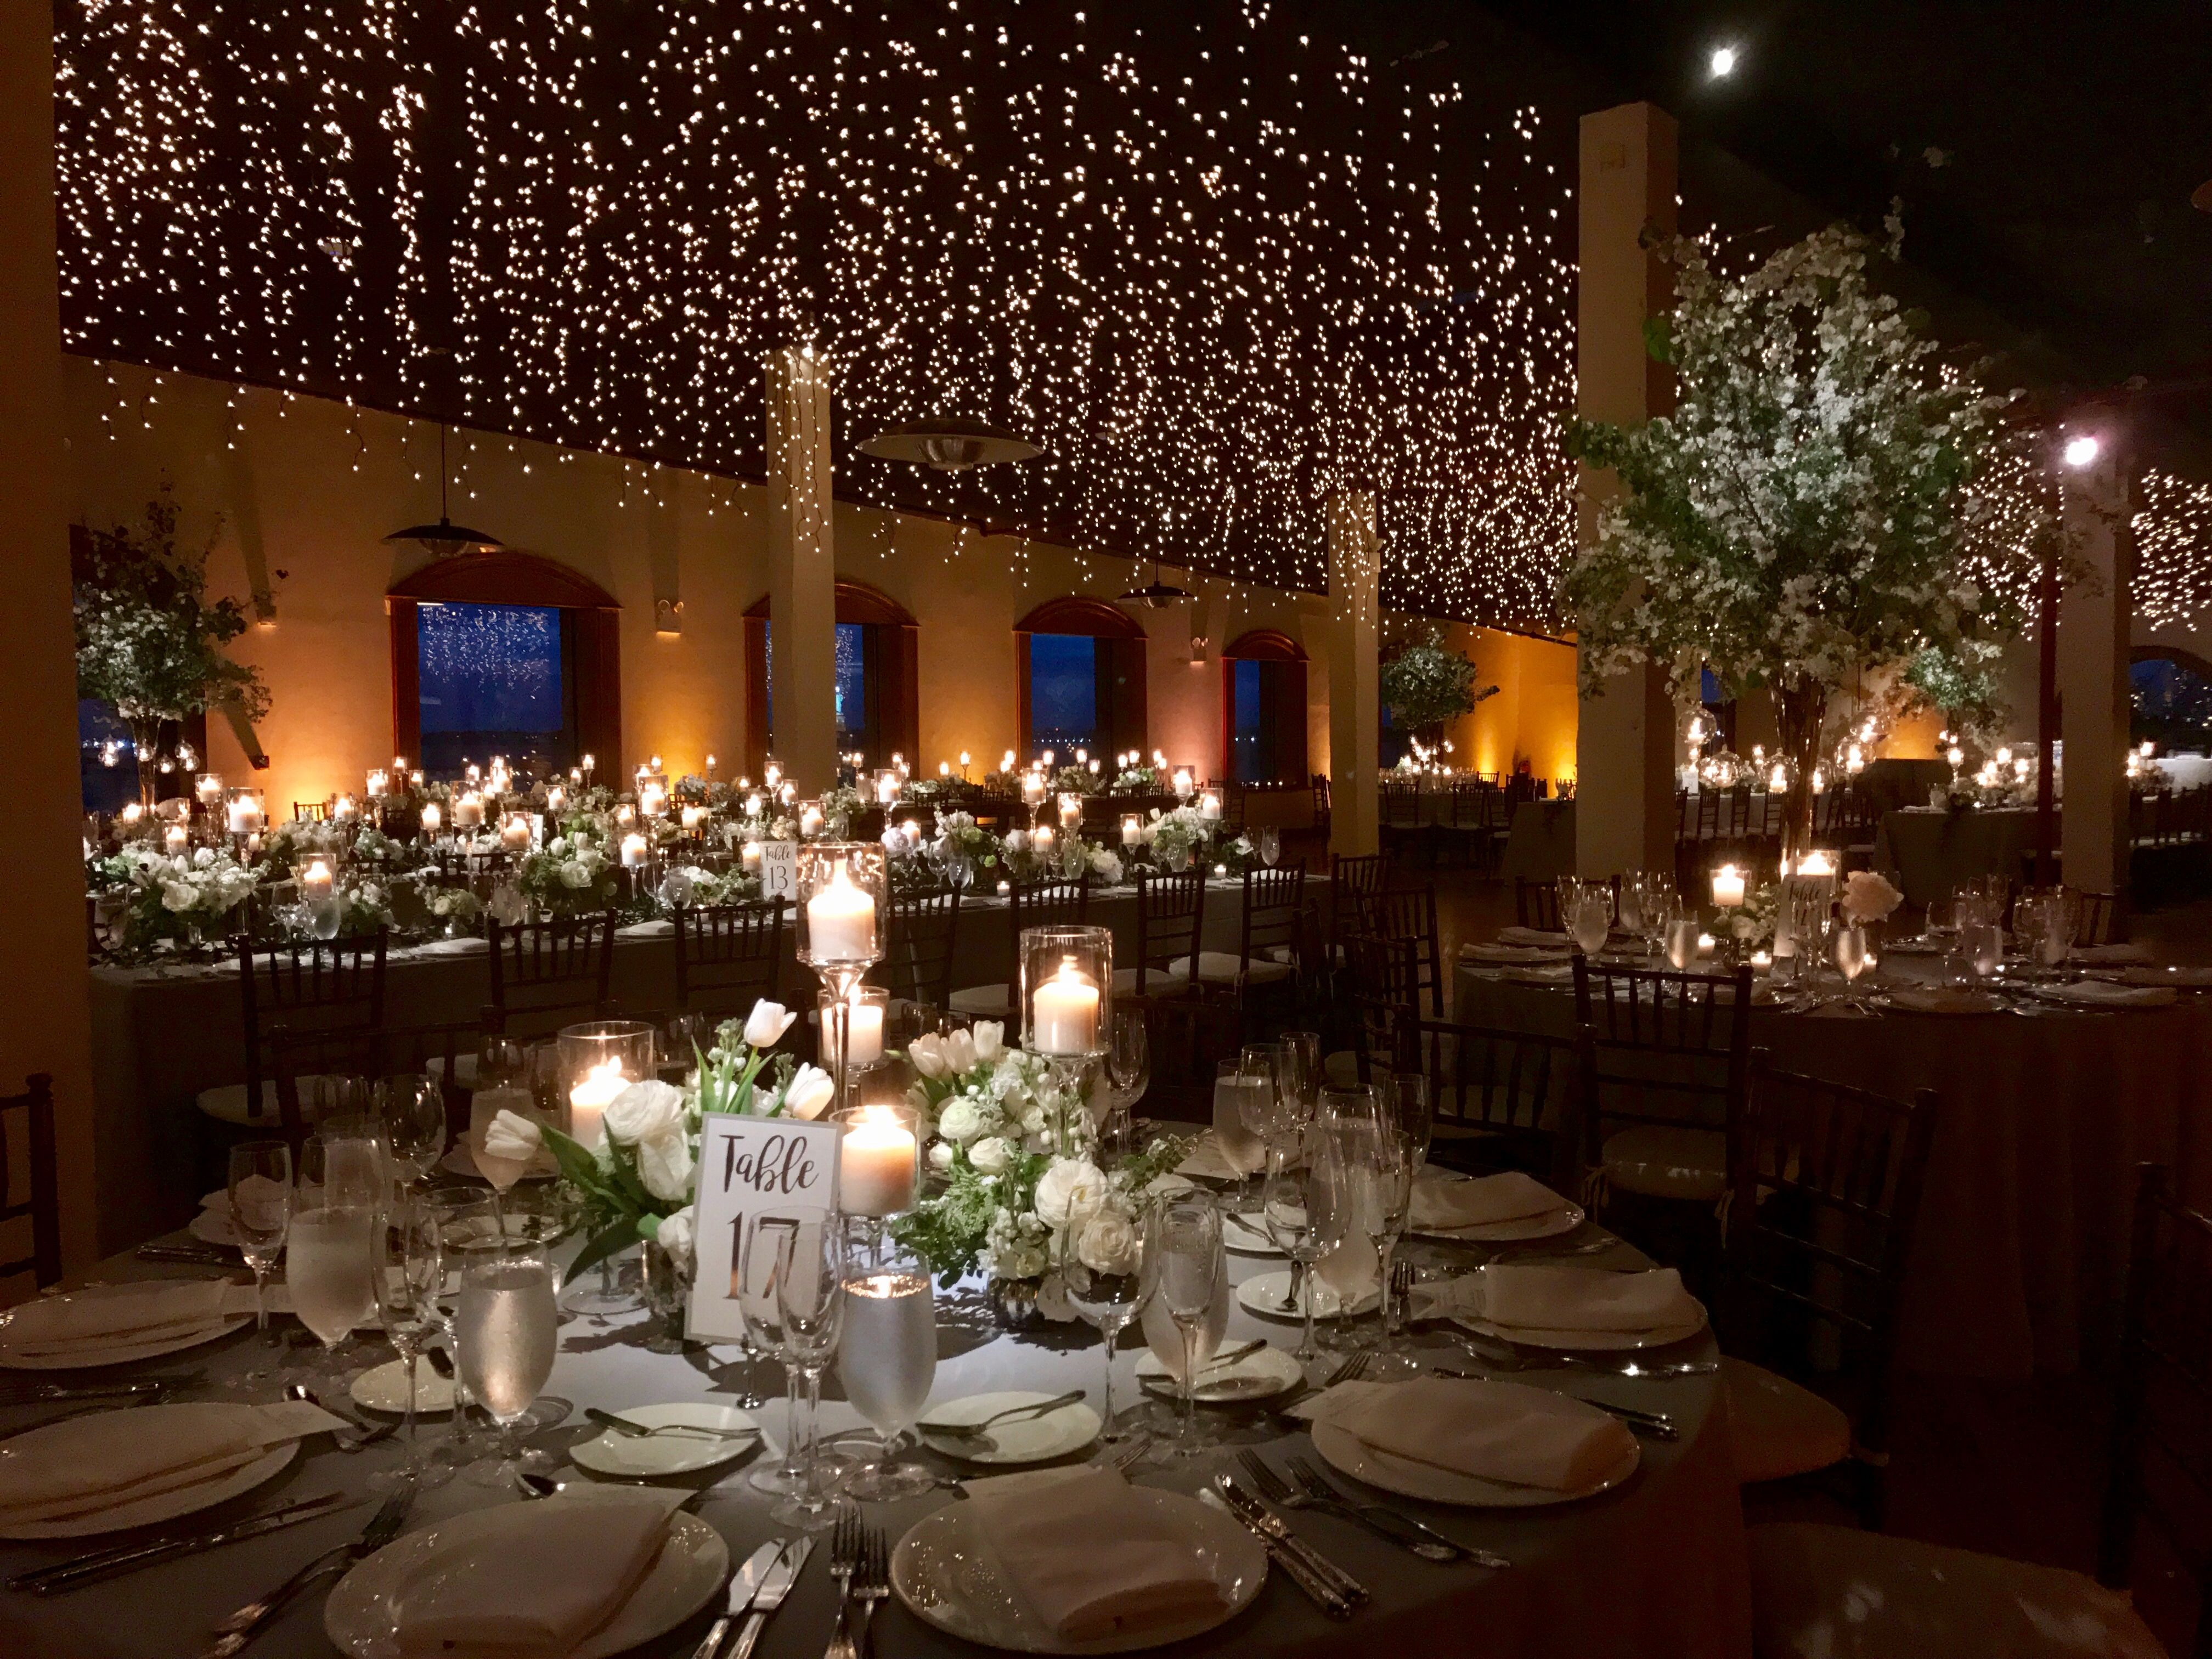 The Liberty Warehouse Flowers By Mimosa Floral Lighting By Pegasus Productions 5 6 Warehouse Wedding Decorations Wedding Venue Decorations Warehouse Wedding